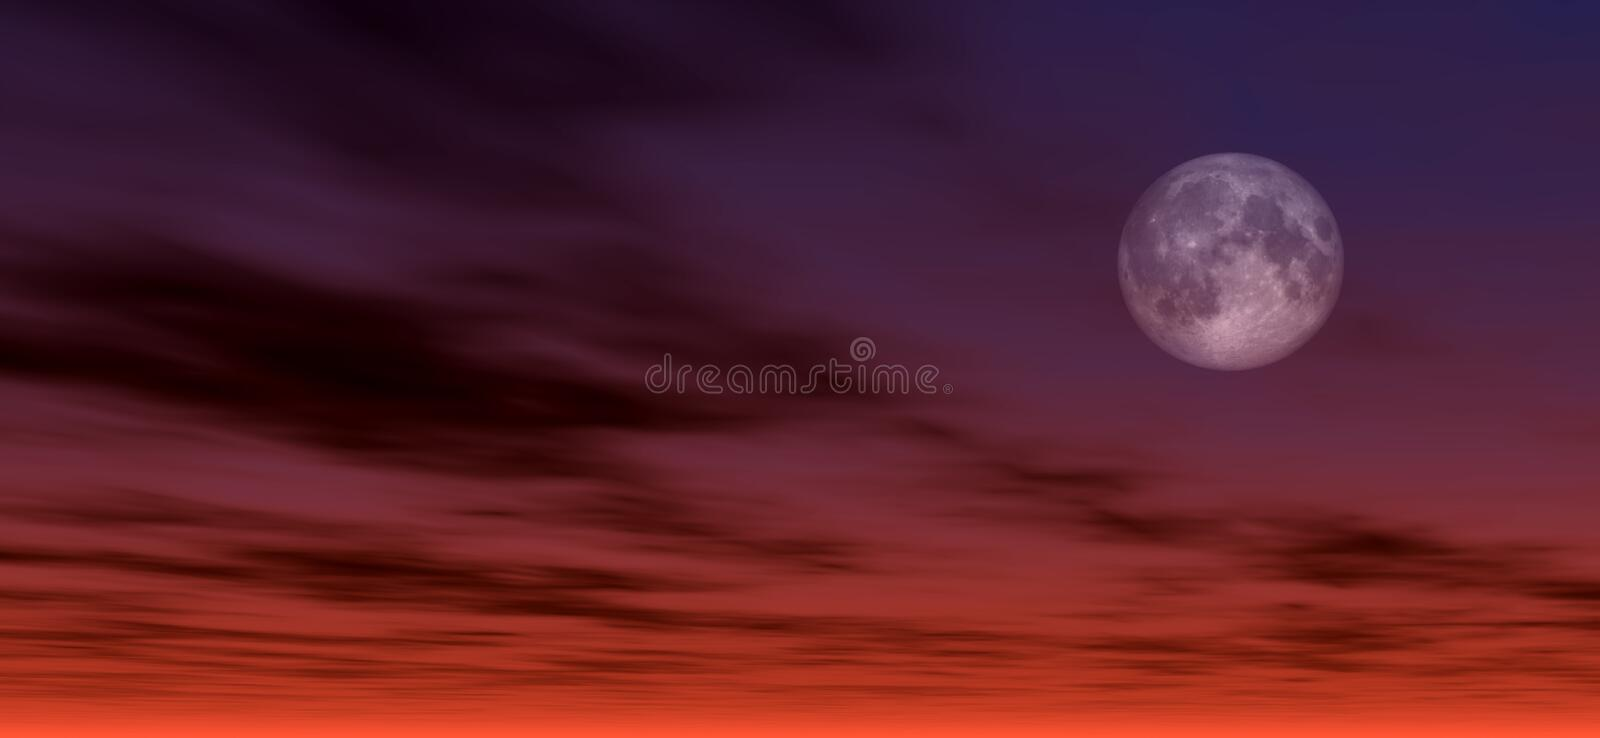 Moonlight background 2 royalty free illustration